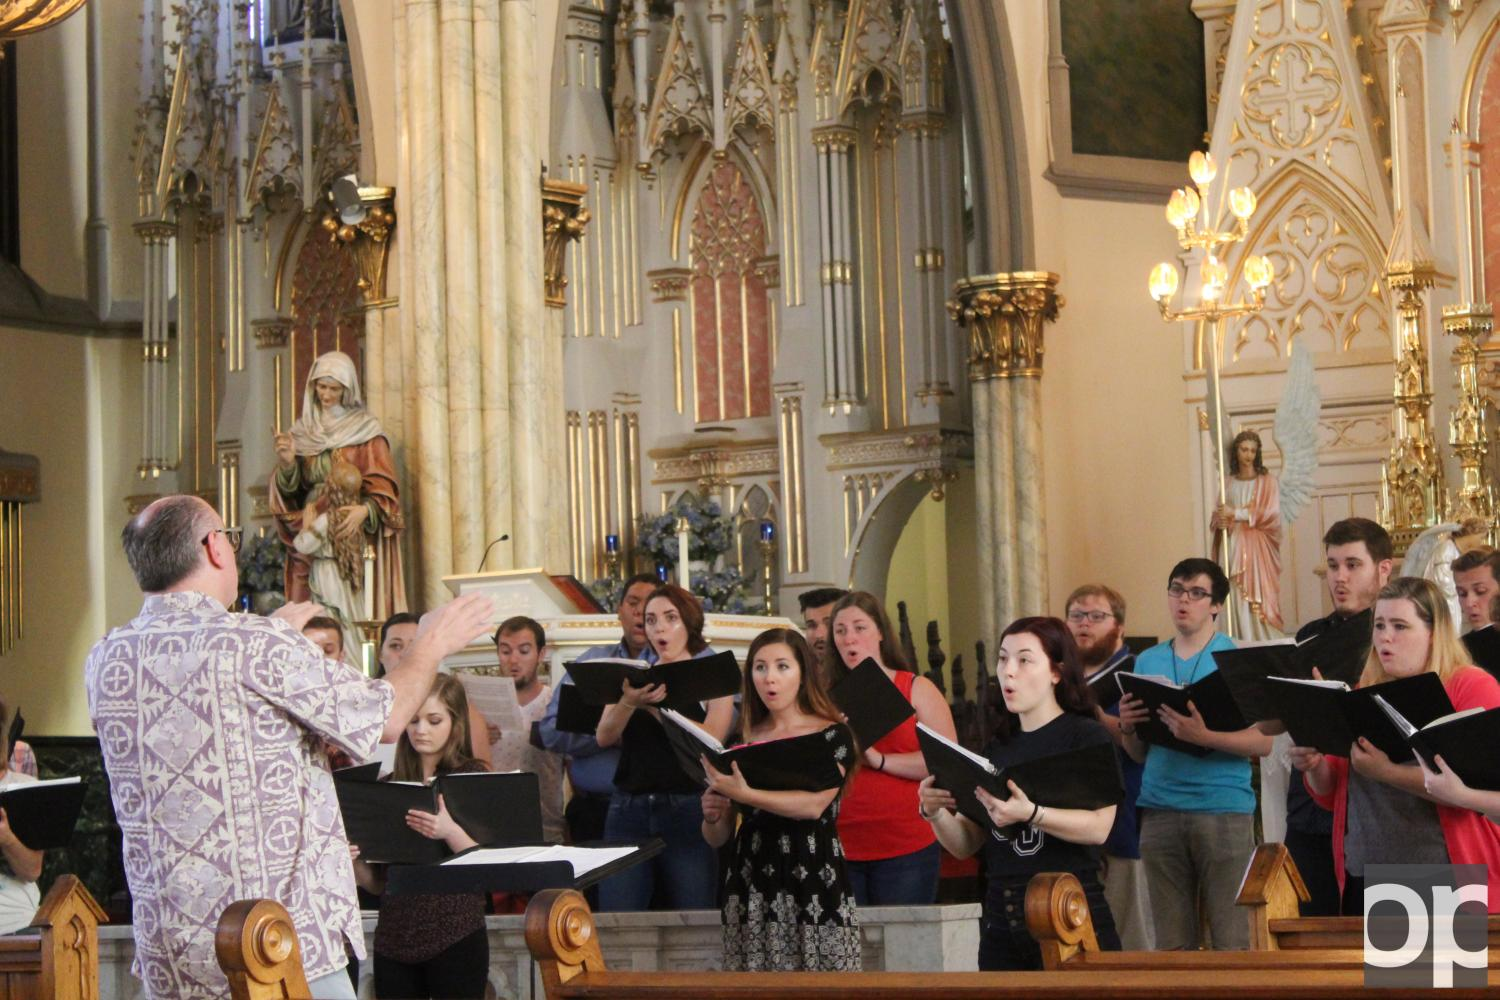 Oakland University Choral sings inside Sweetest Heart of Mary Roman Catholic Church before heading off to Europe.